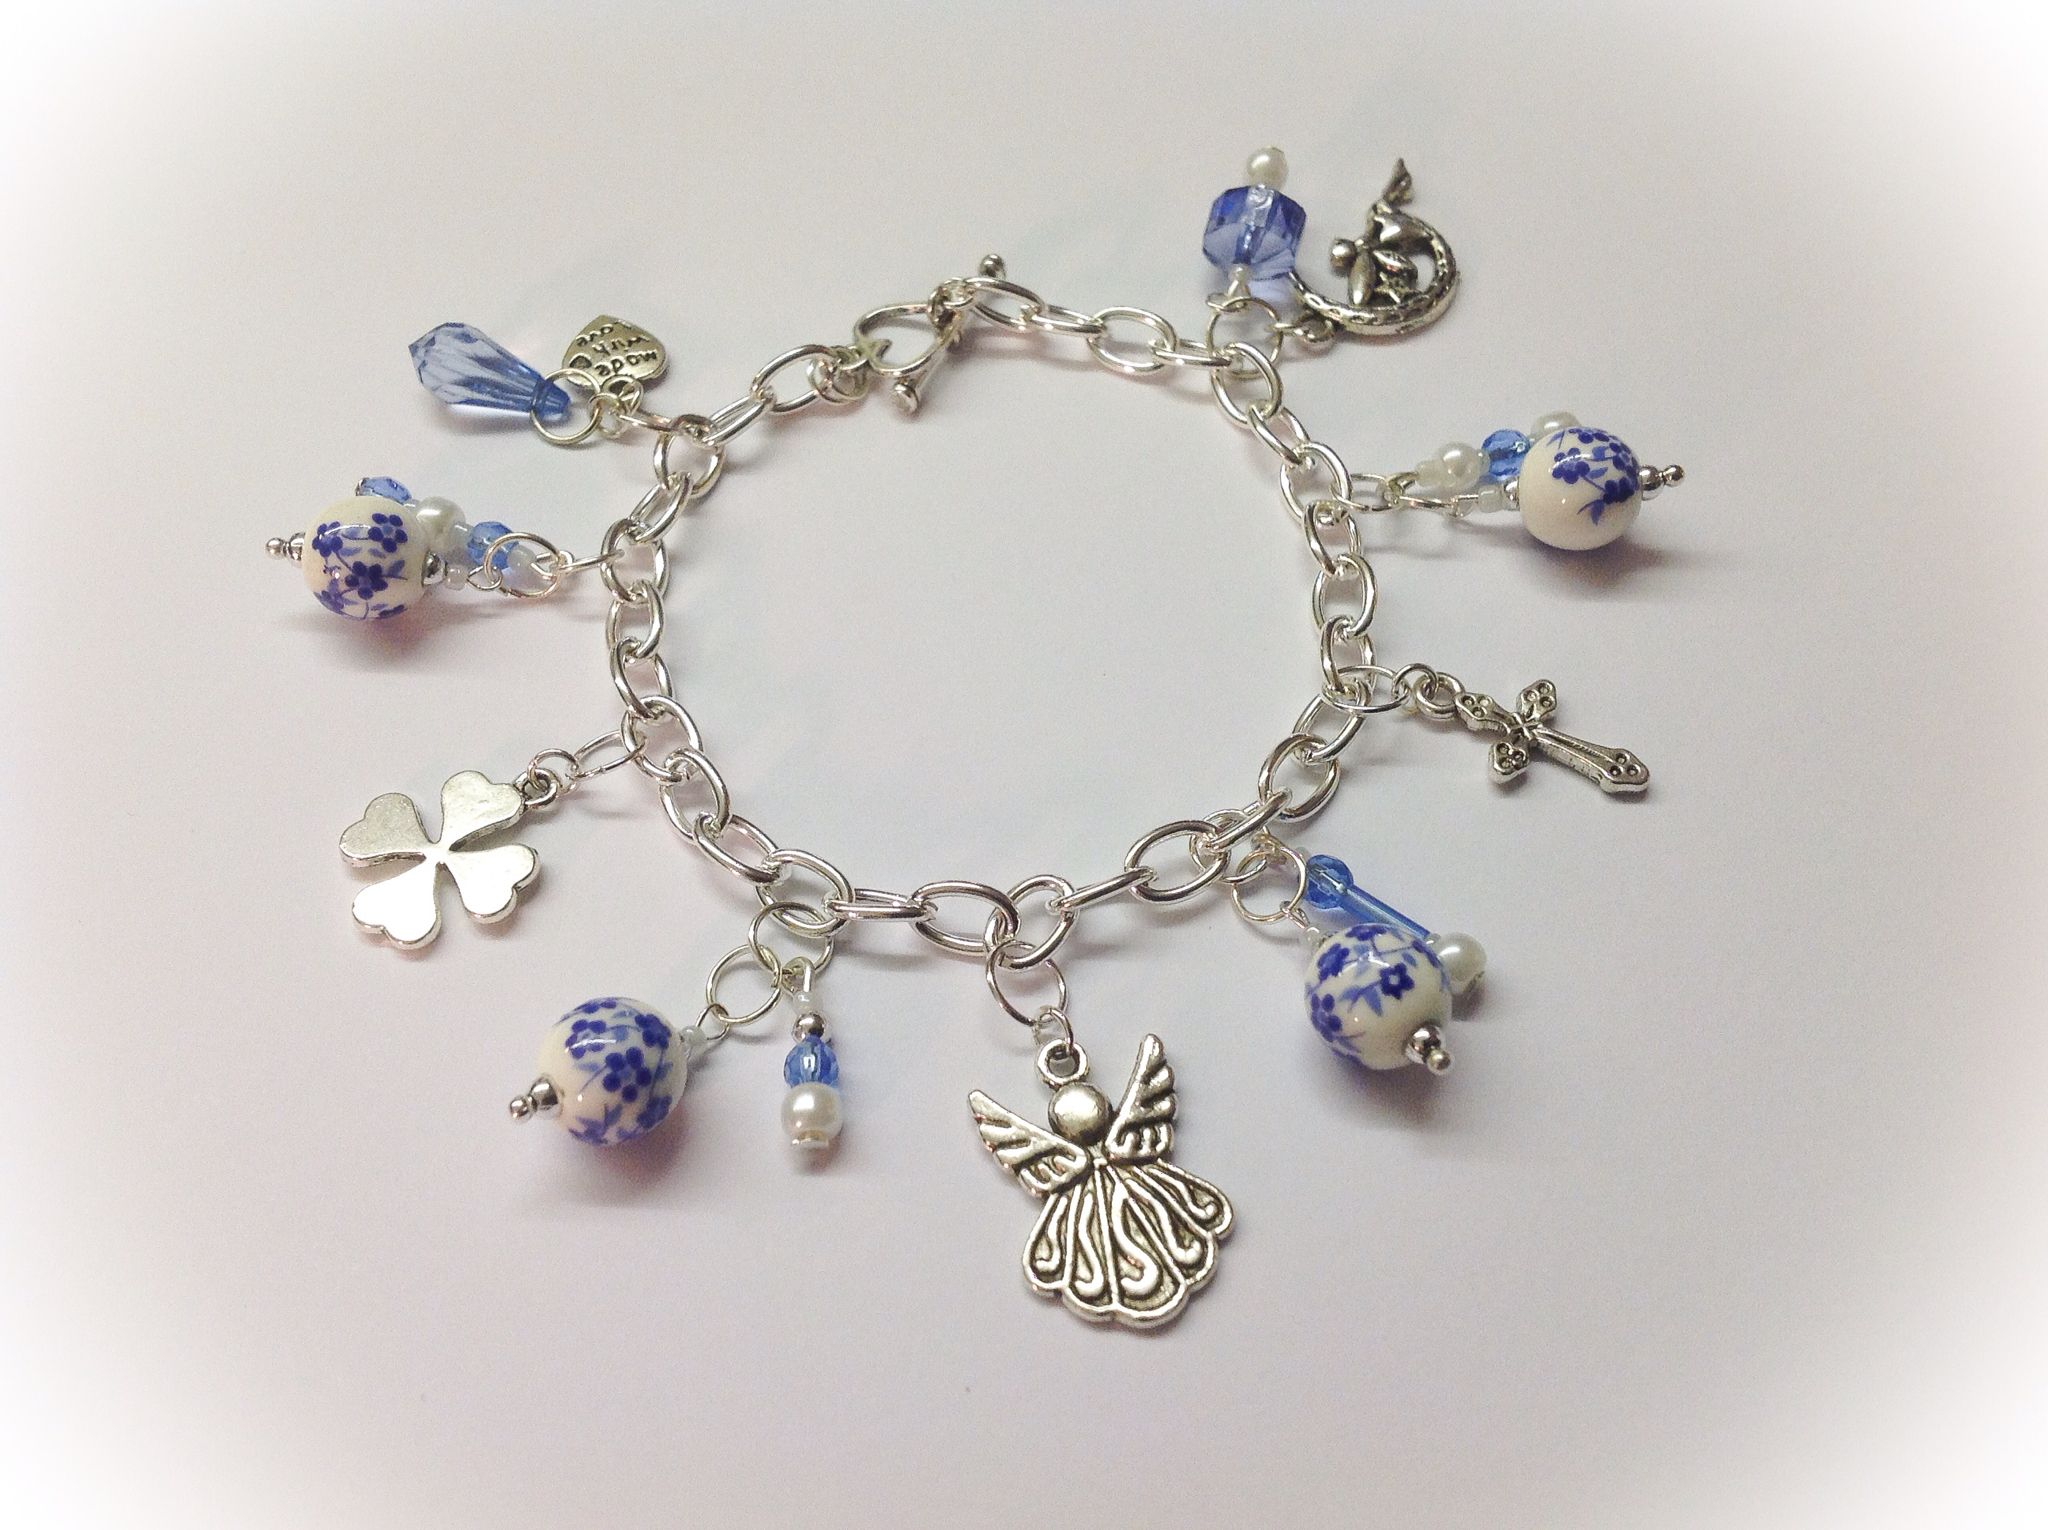 facc11f0fa7a6 Bespoke charm bracelet in shades of blue. Each charm individually ...